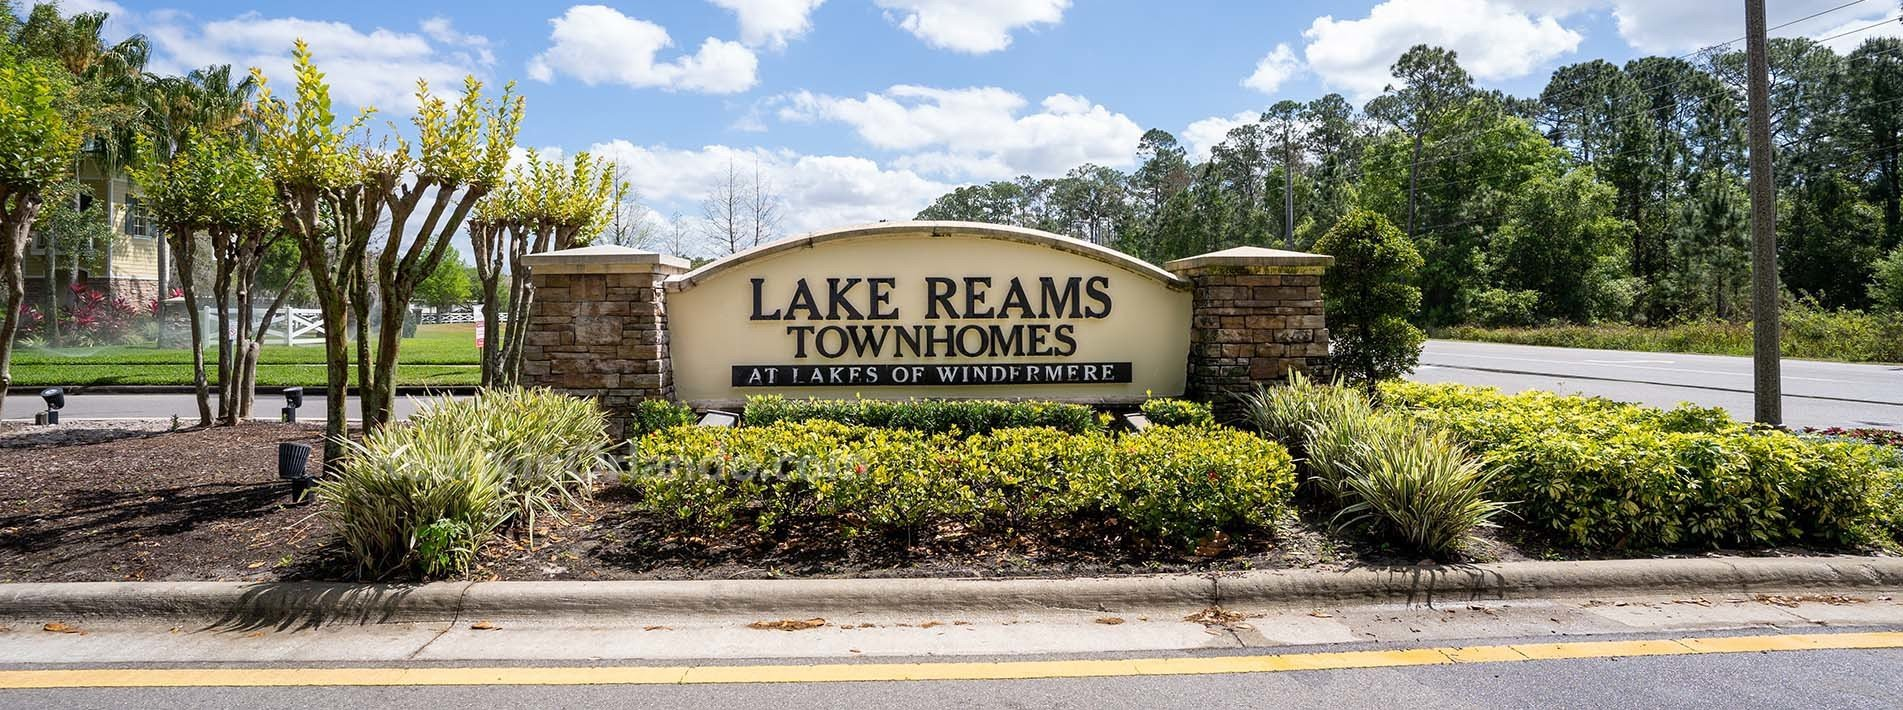 Lake Reams Townhomes Windermere Real Estate